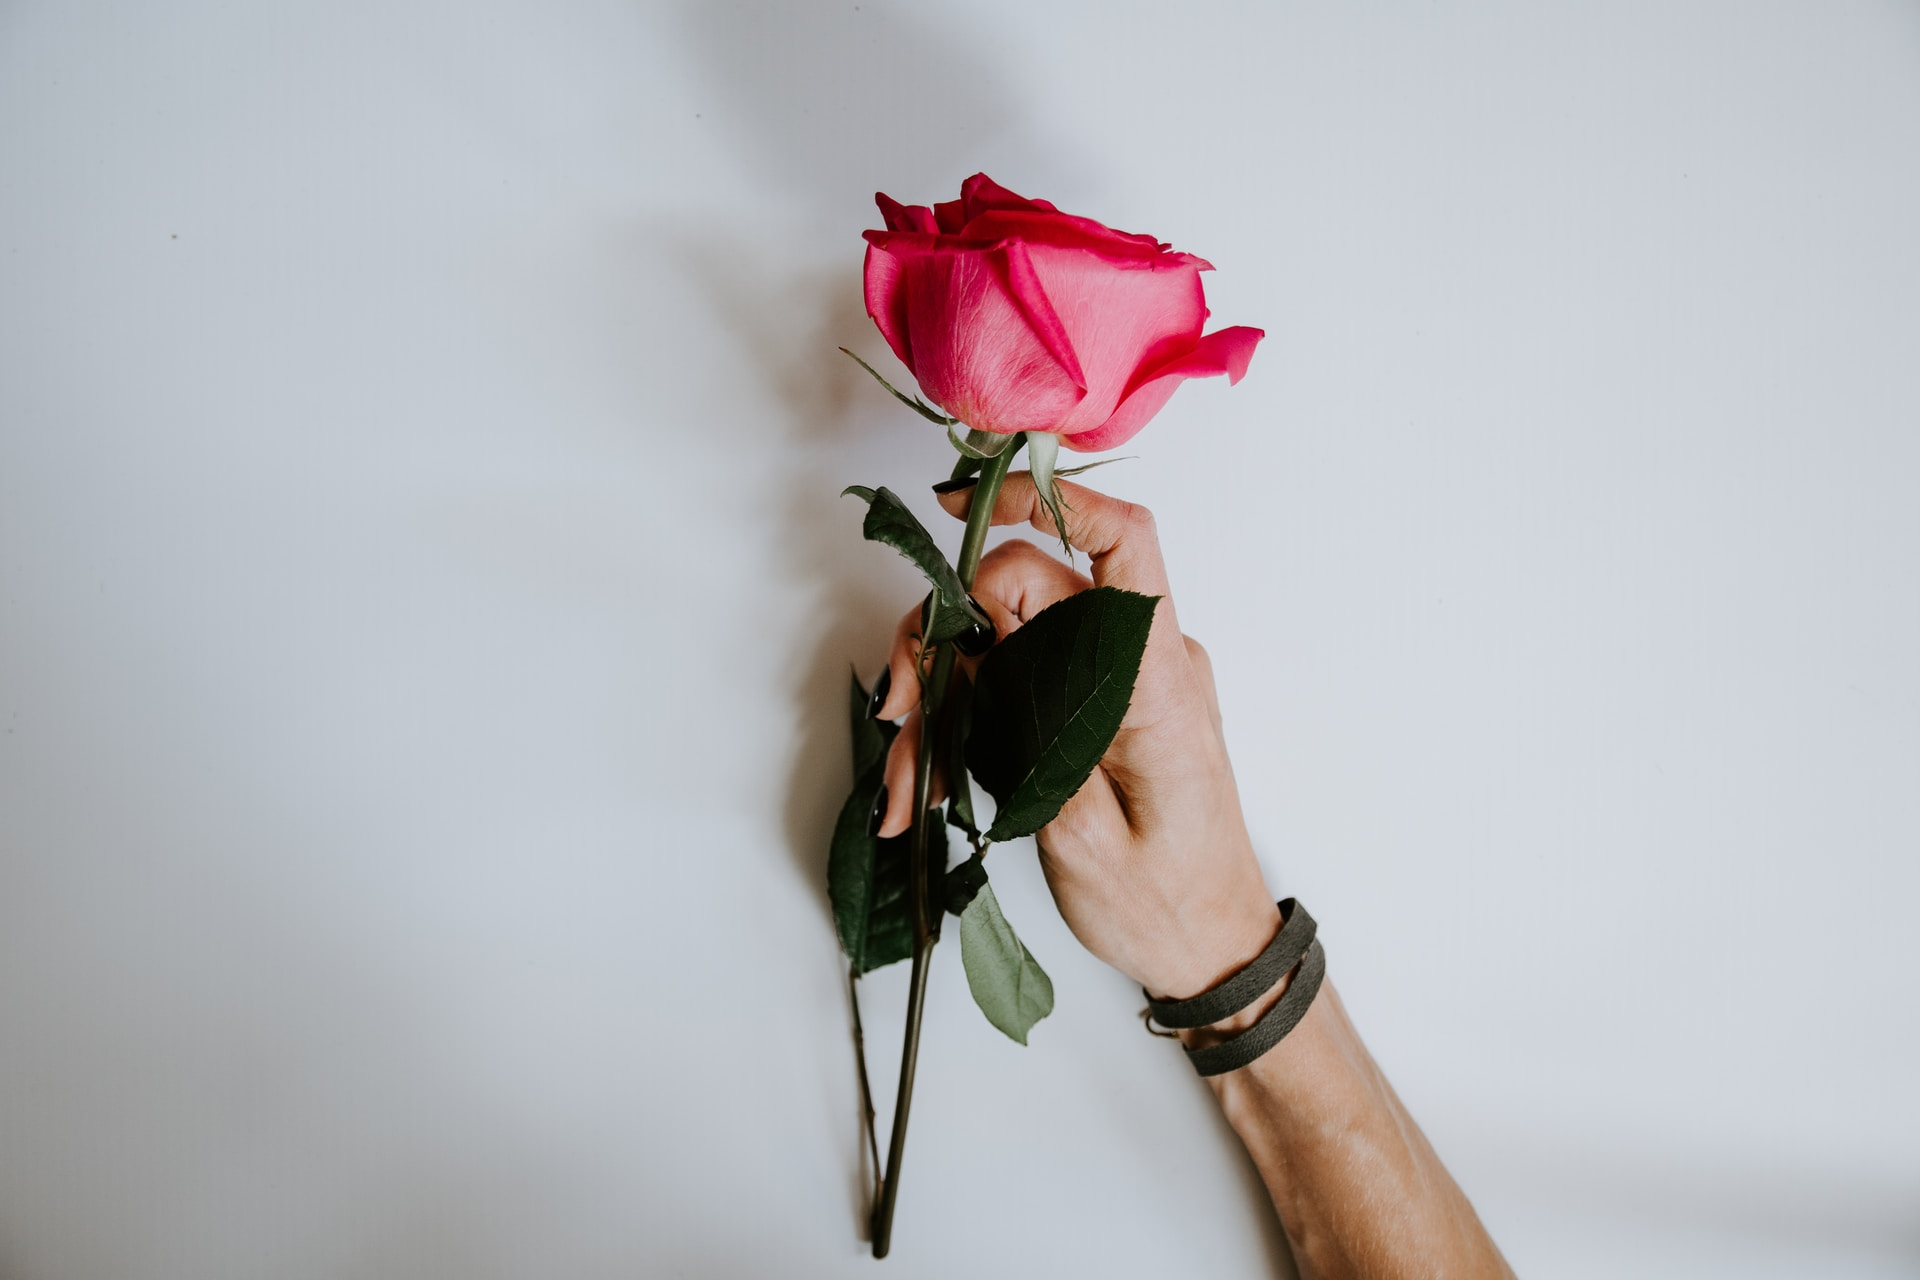 person holding red rose flower